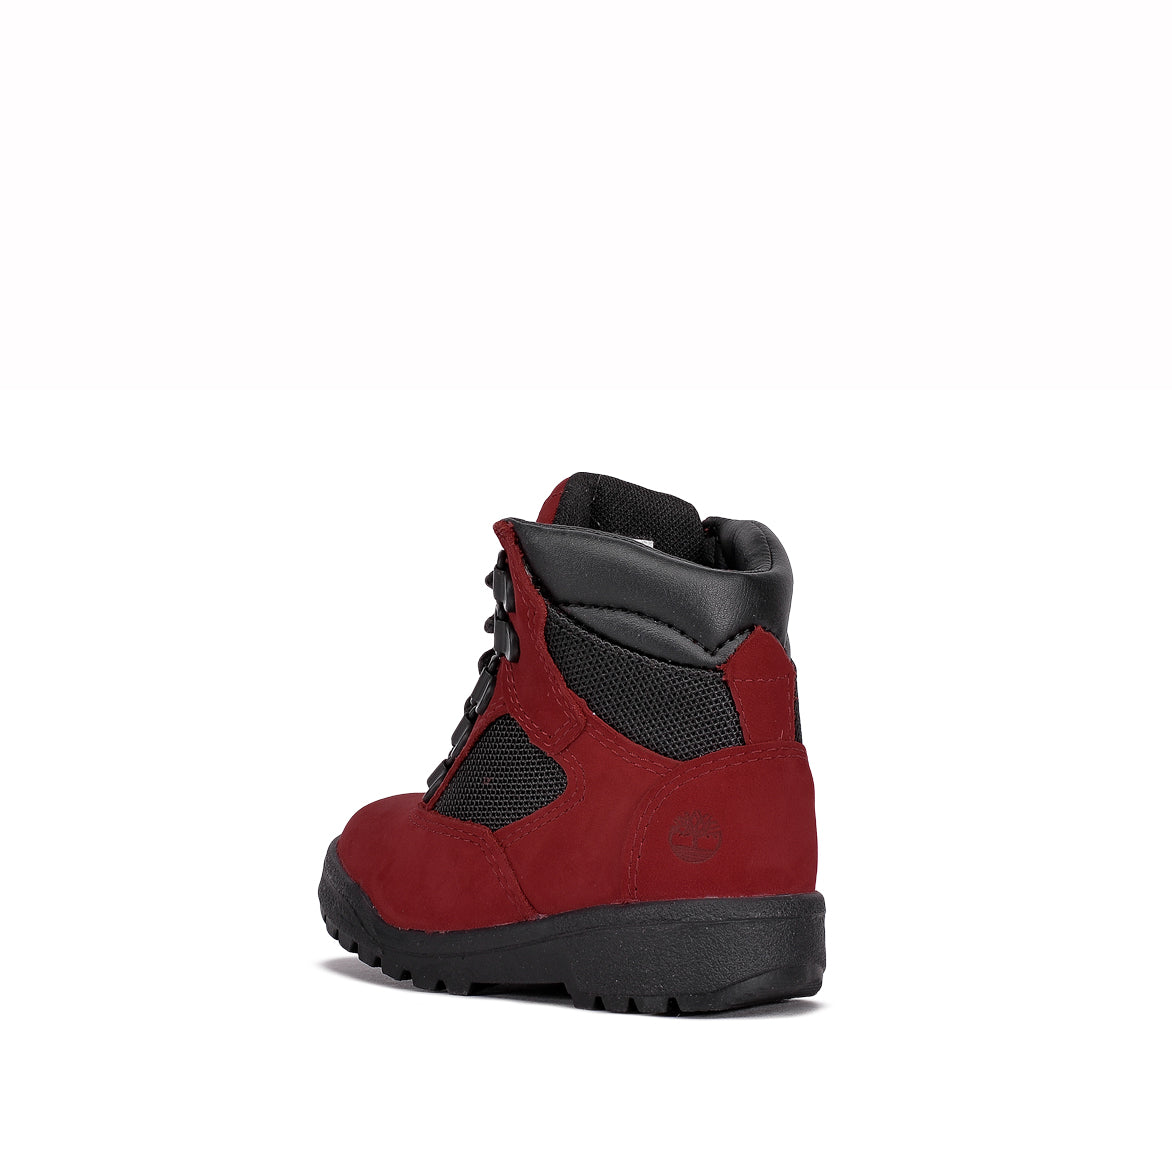 "WATERPROOF 6"" FIELD BOOT - RED / DARK GREY"